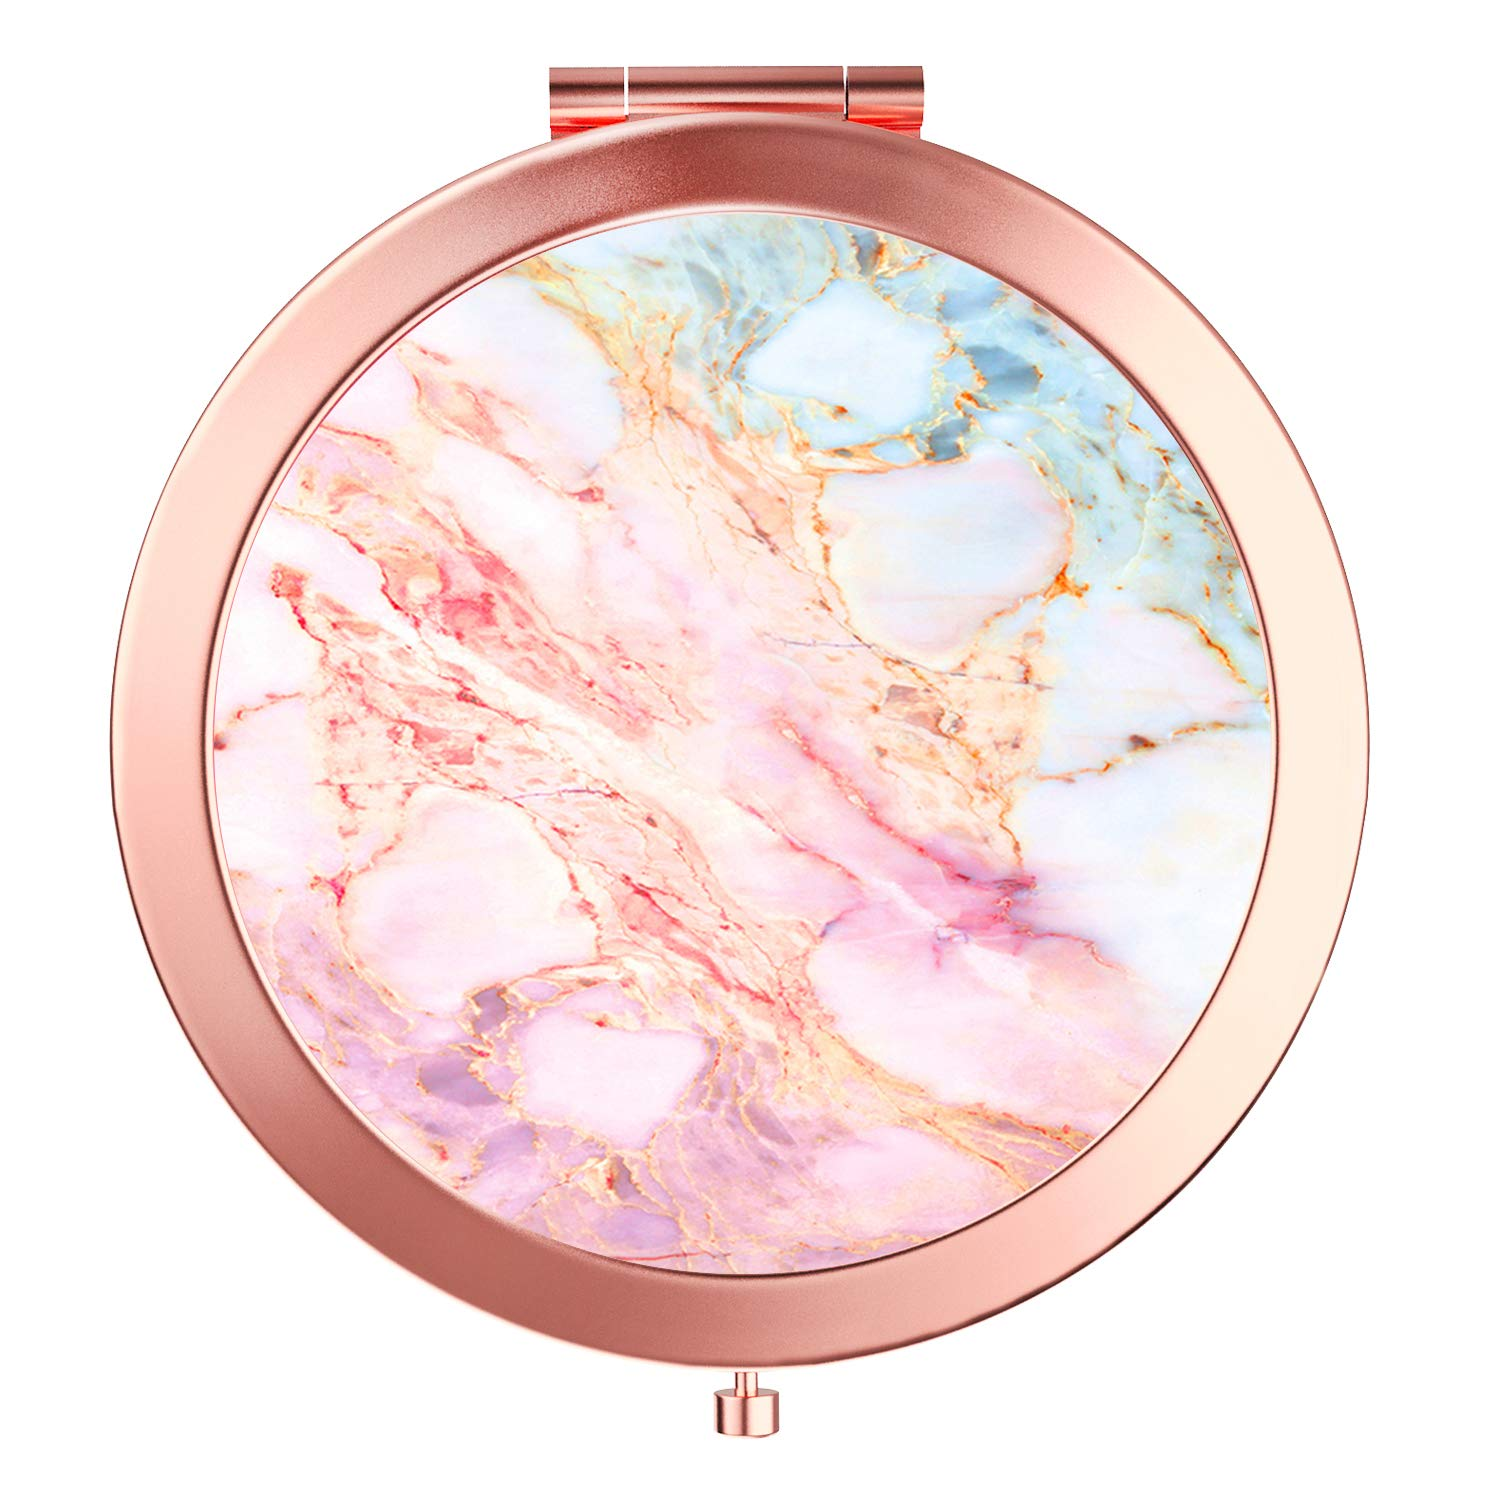 Imiao Makeup Mirror Rose Gold Compact Mirror Portable Hand Mirror Round Mini Pocket Mirror With 2 x 1x Magnification For Woman,Mother,Girls,Great Gift Marble